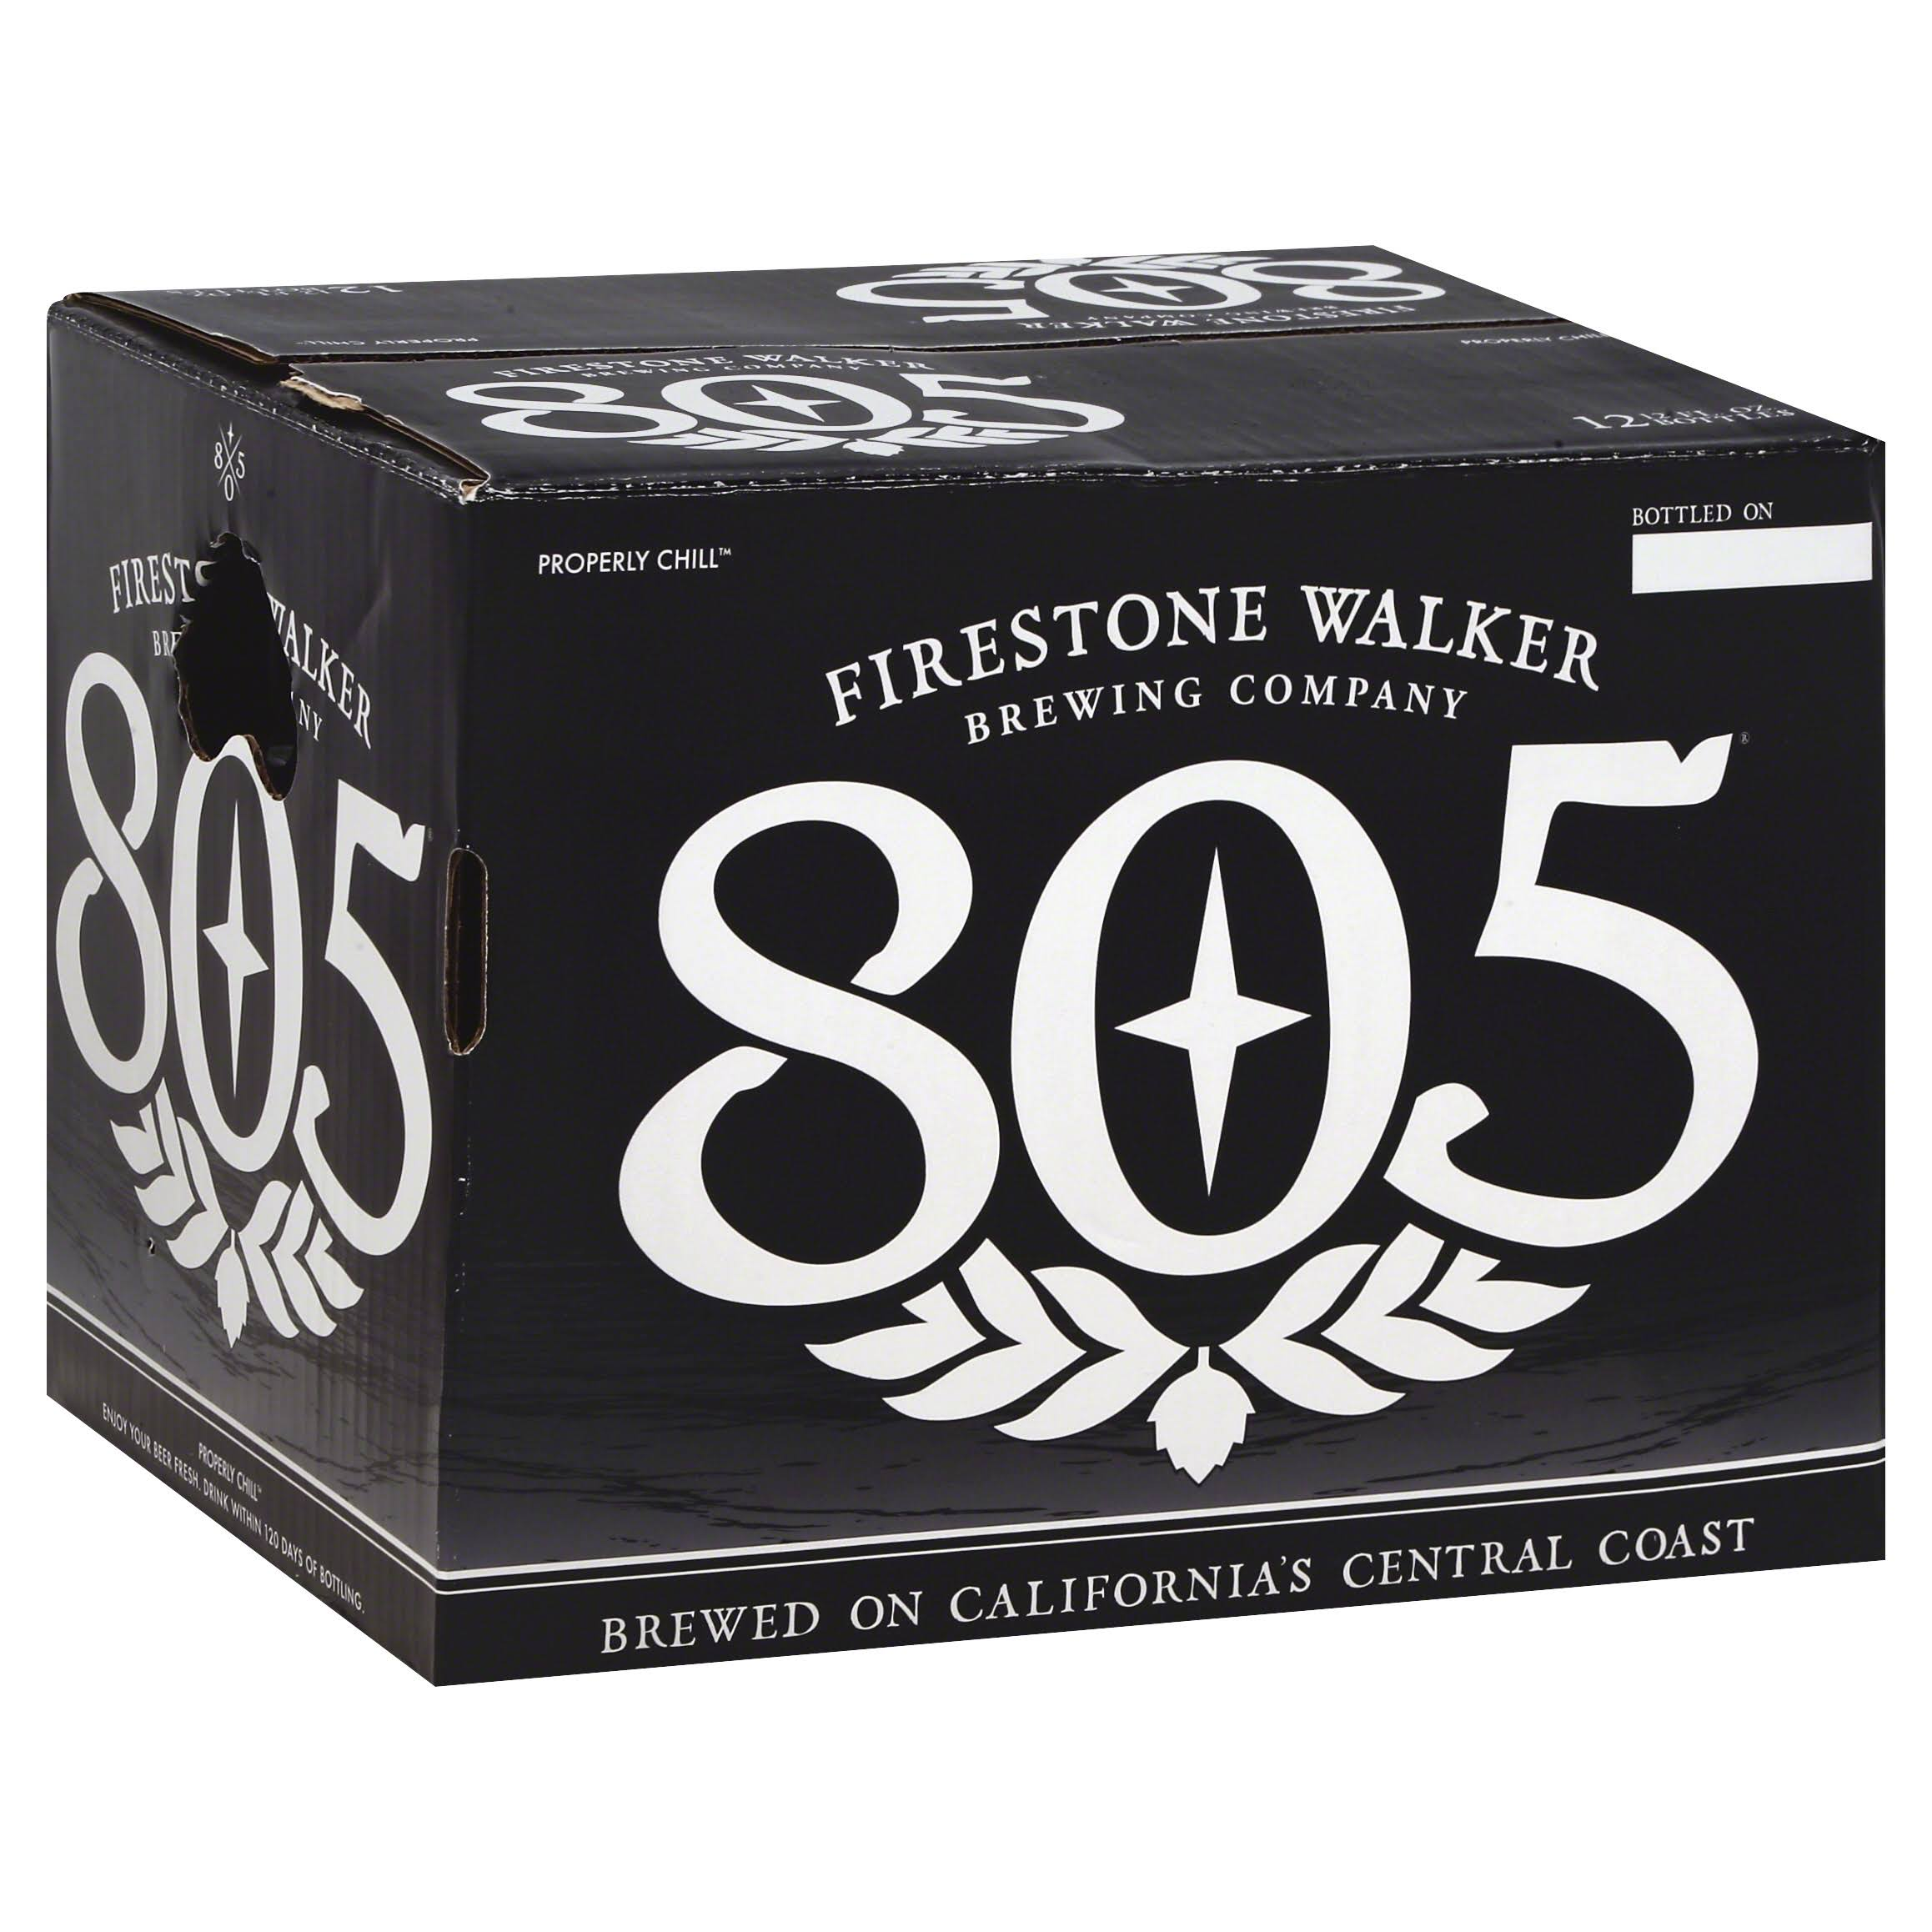 Firestone Walker Beer, 805 - 12 pack, 12 fl oz bottles